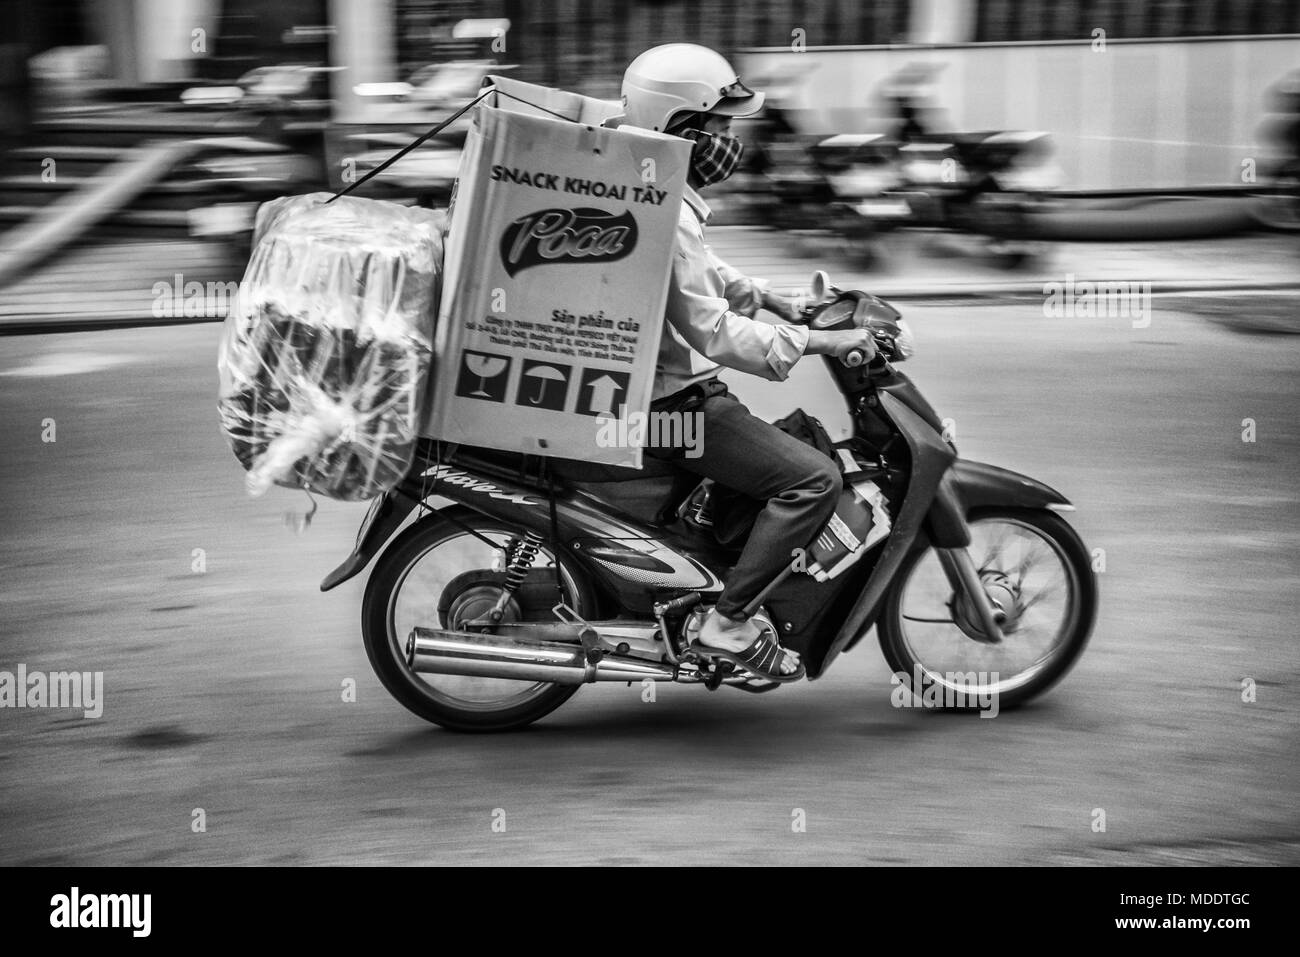 Motion blur motorcyclist carrying products on back of his bike, Hue Vietnam, south east asia - Stock Image